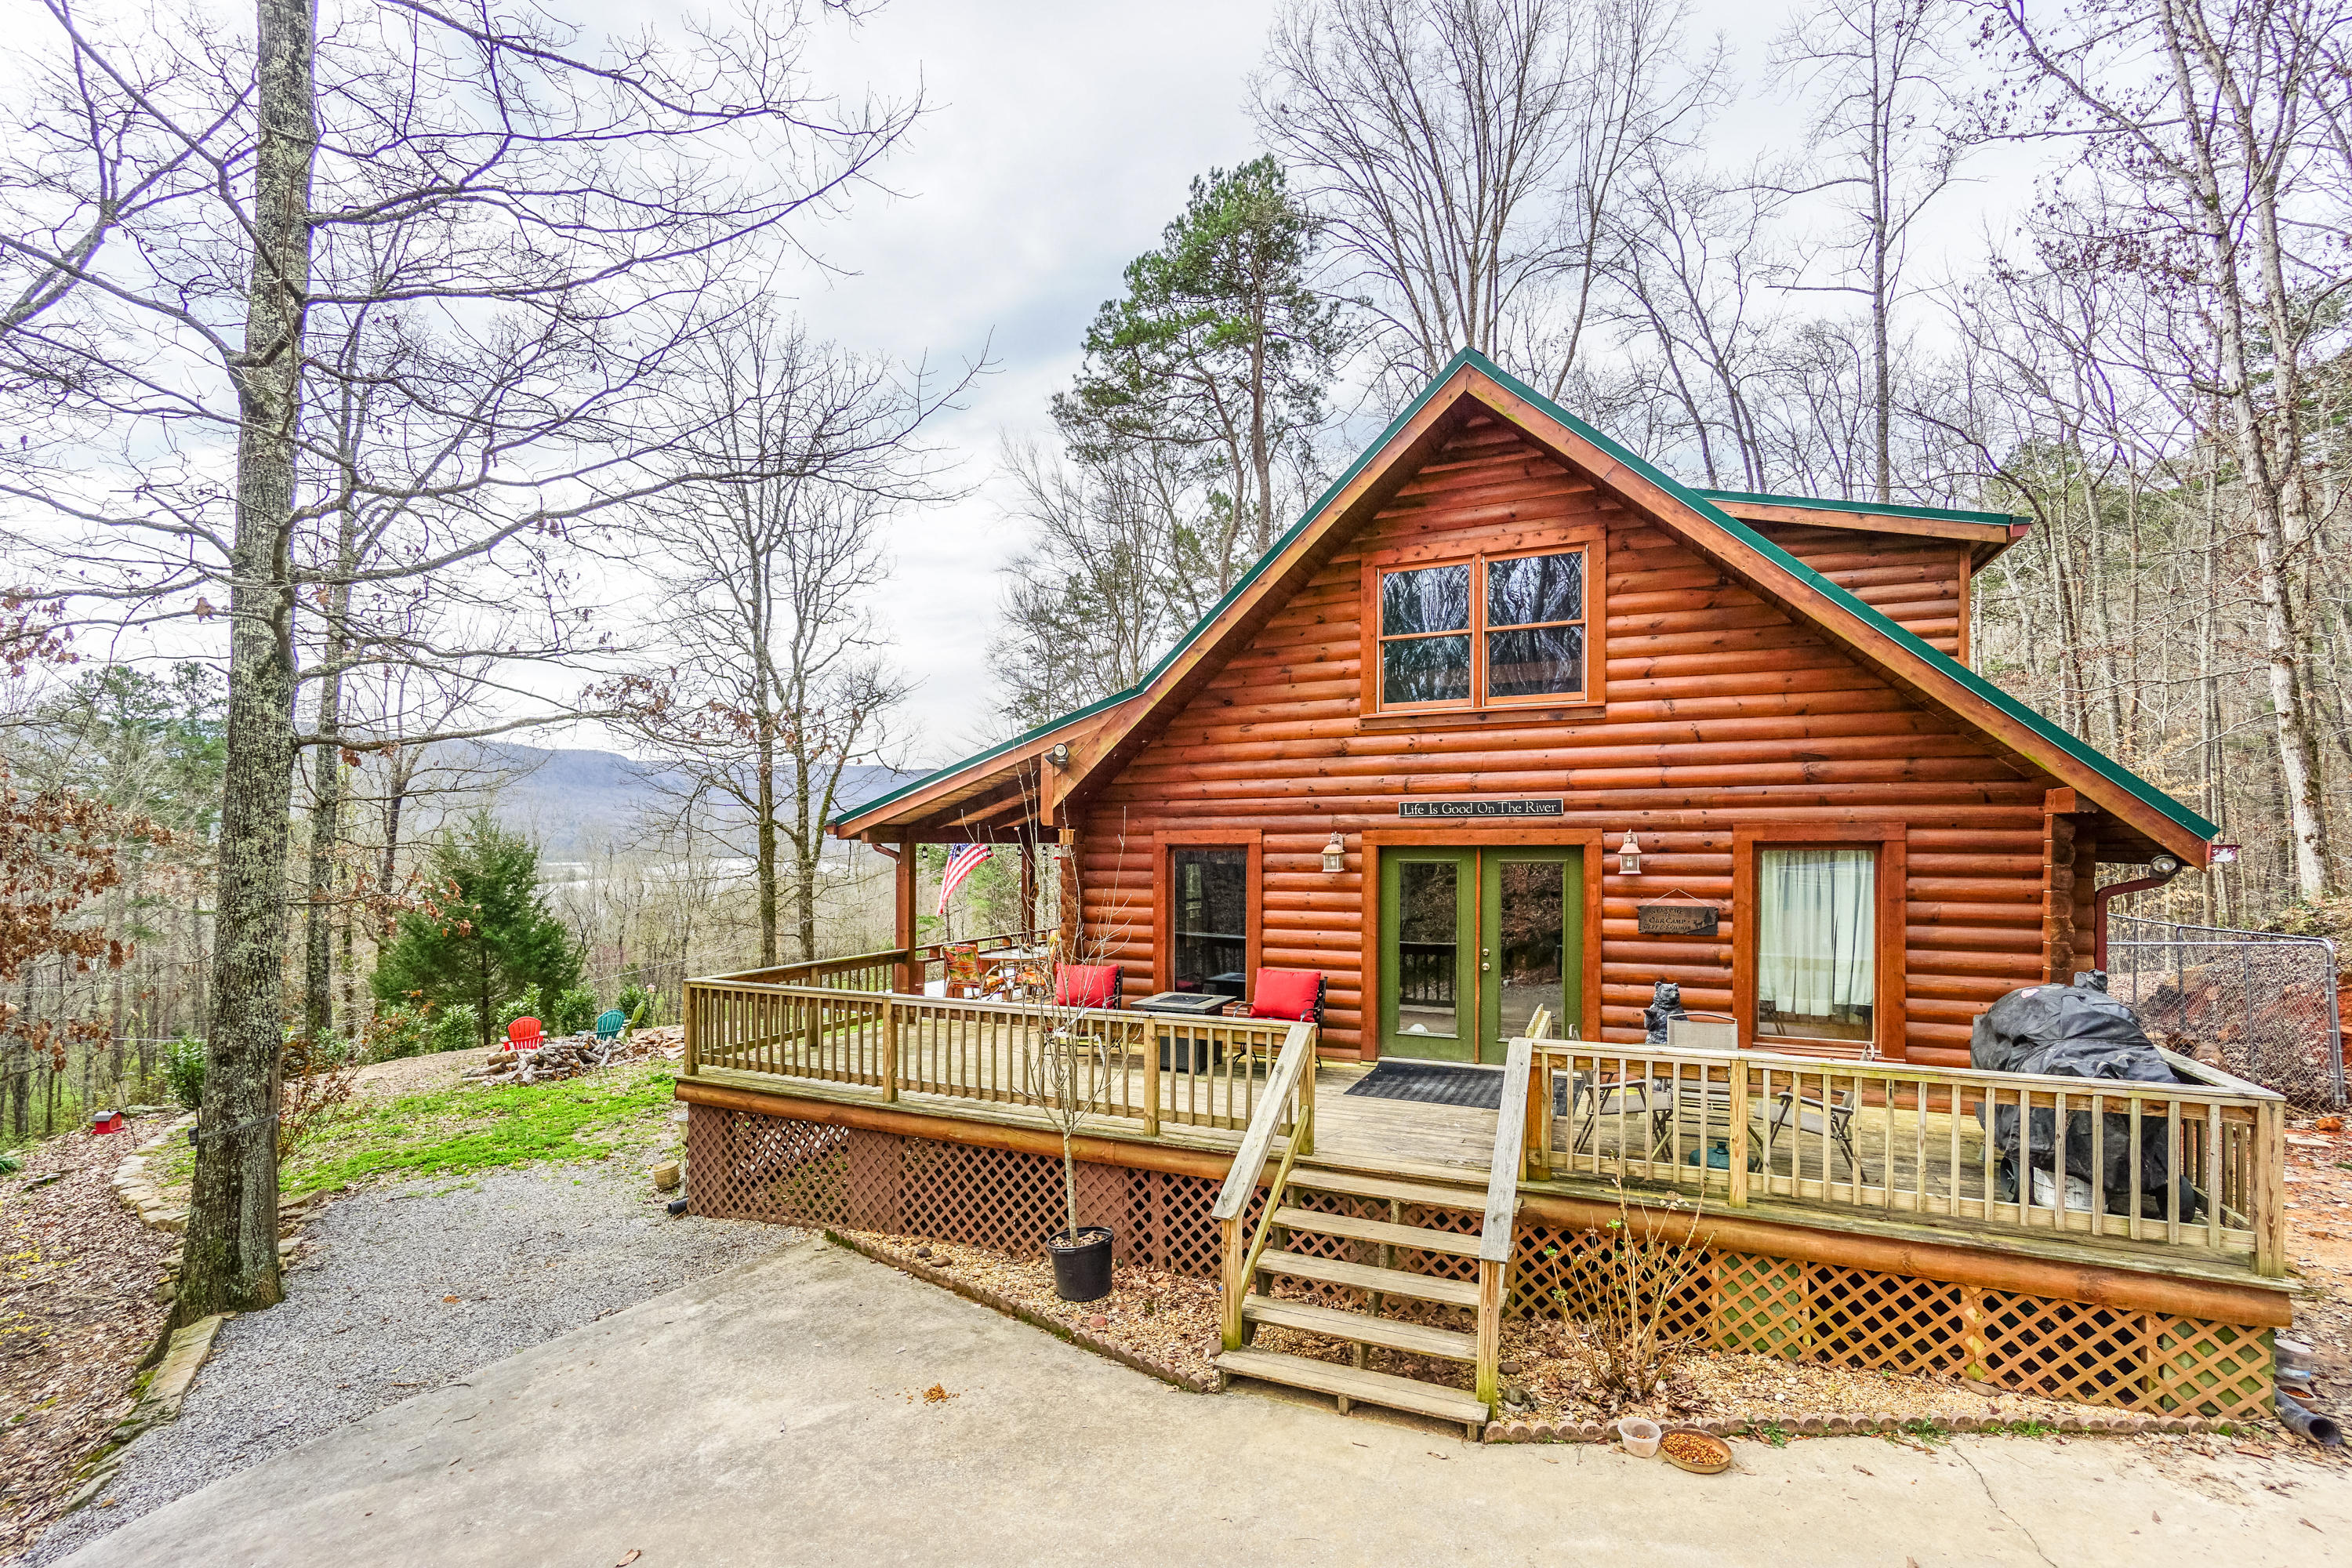 13345 Mullins Cove Rd, Whitwell, TN 37397